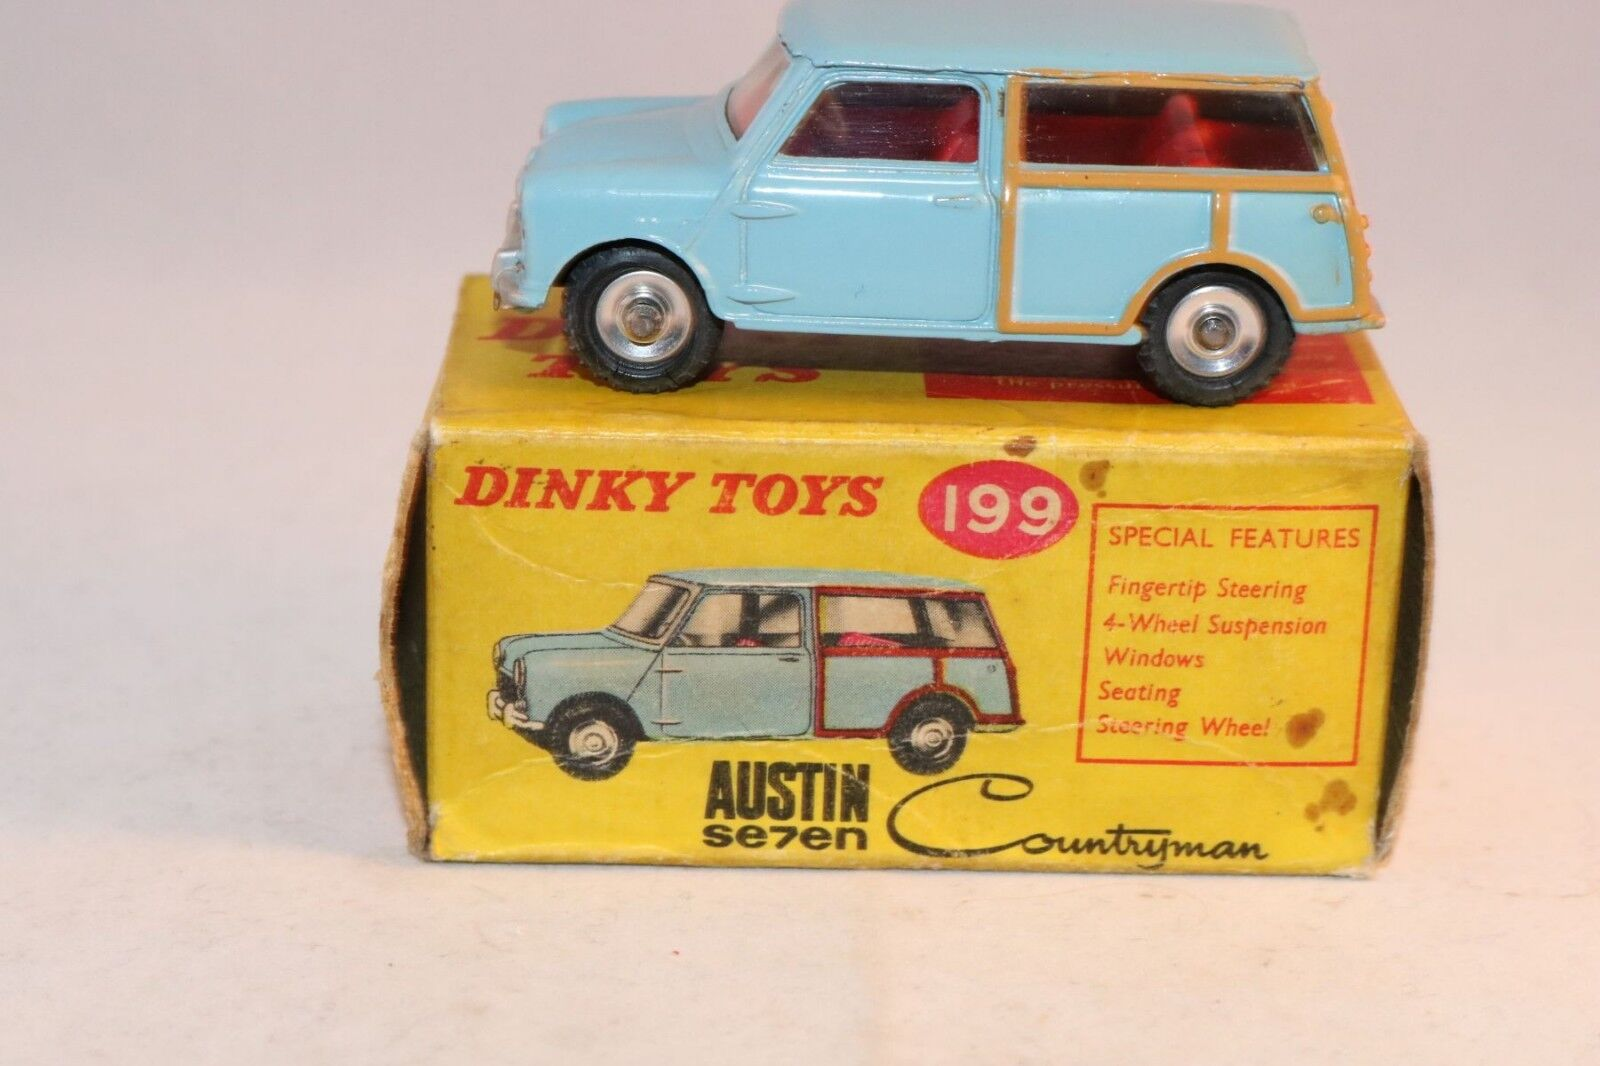 Dinky Toys 199 Austin Se7en Countryman mint in box all original condition